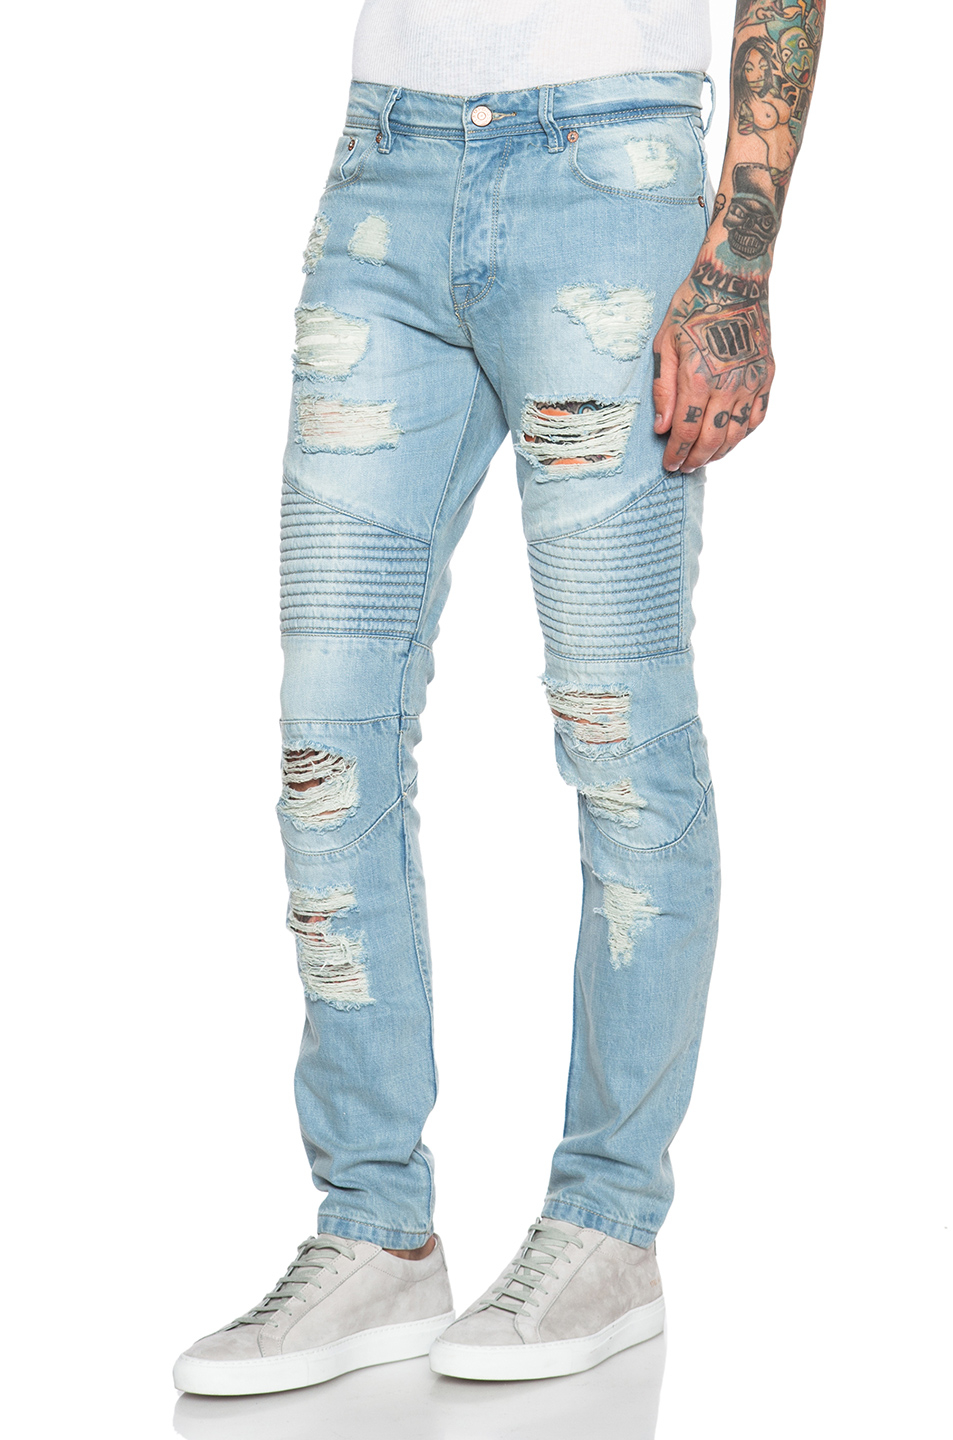 Lyst - Stampd Distressed Moto Jeans in Blue